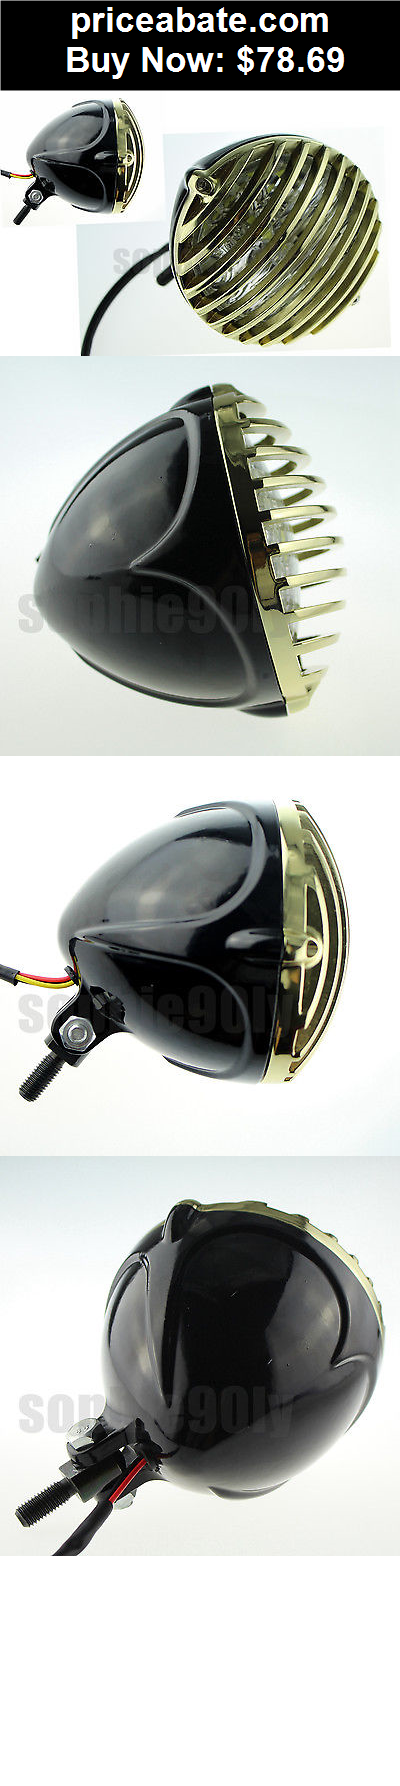 motors-parts-and-accessories: scalloped brass headlight motorcycle